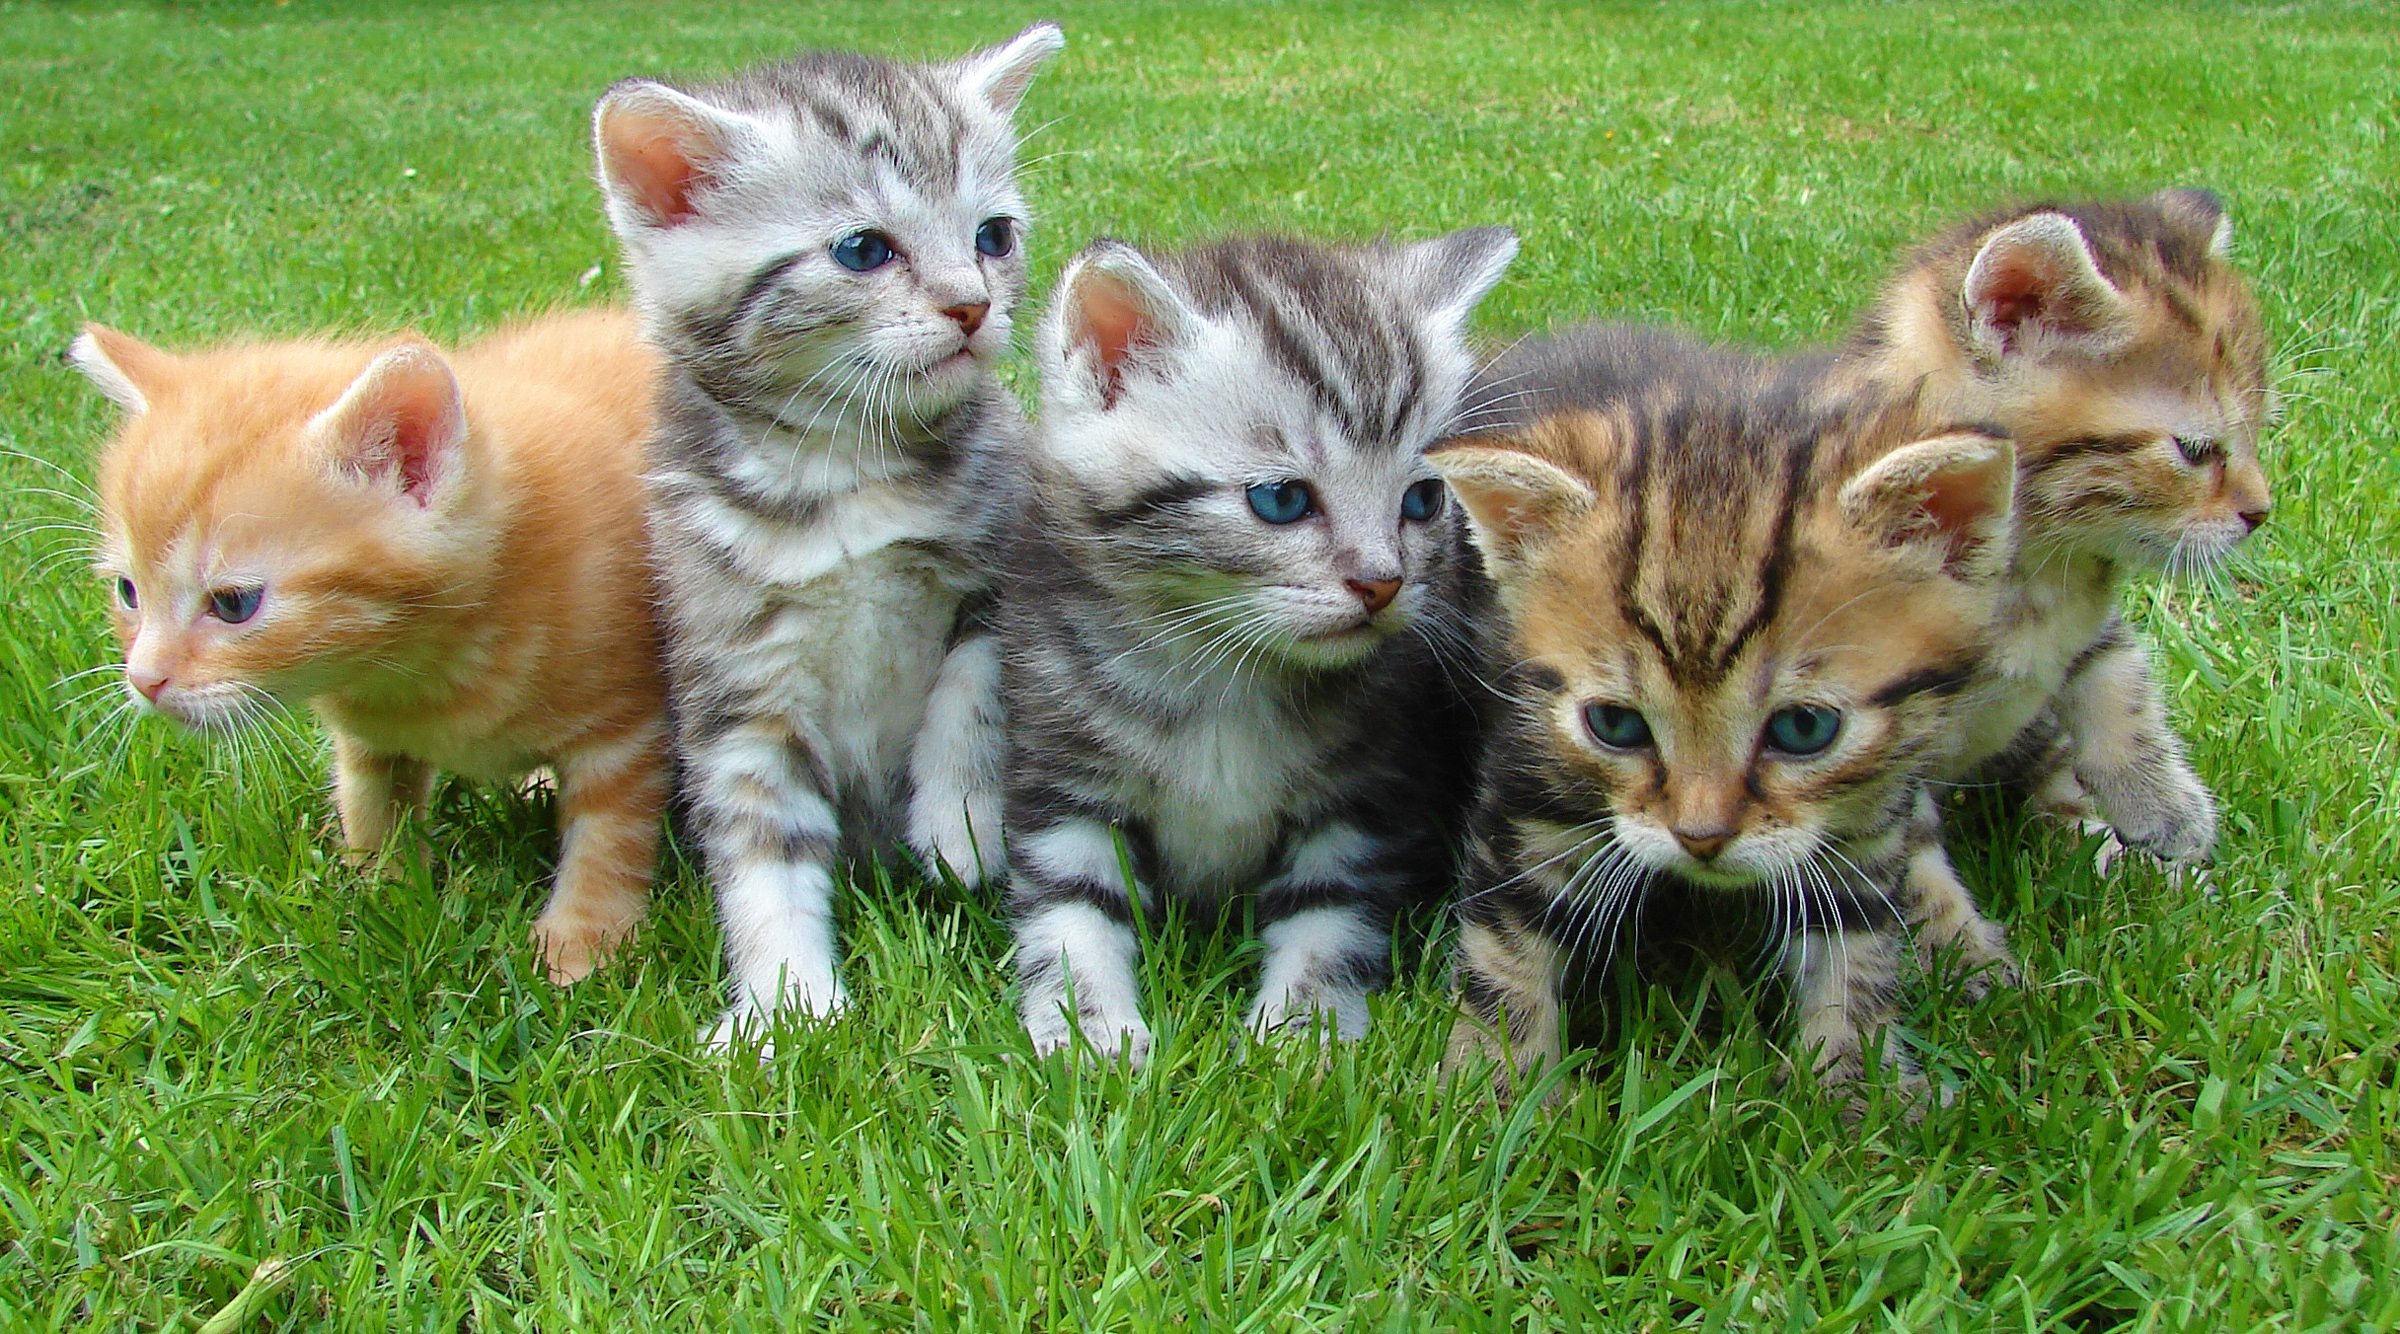 kittens-cat-cat-puppy-rush-45170.jpeg